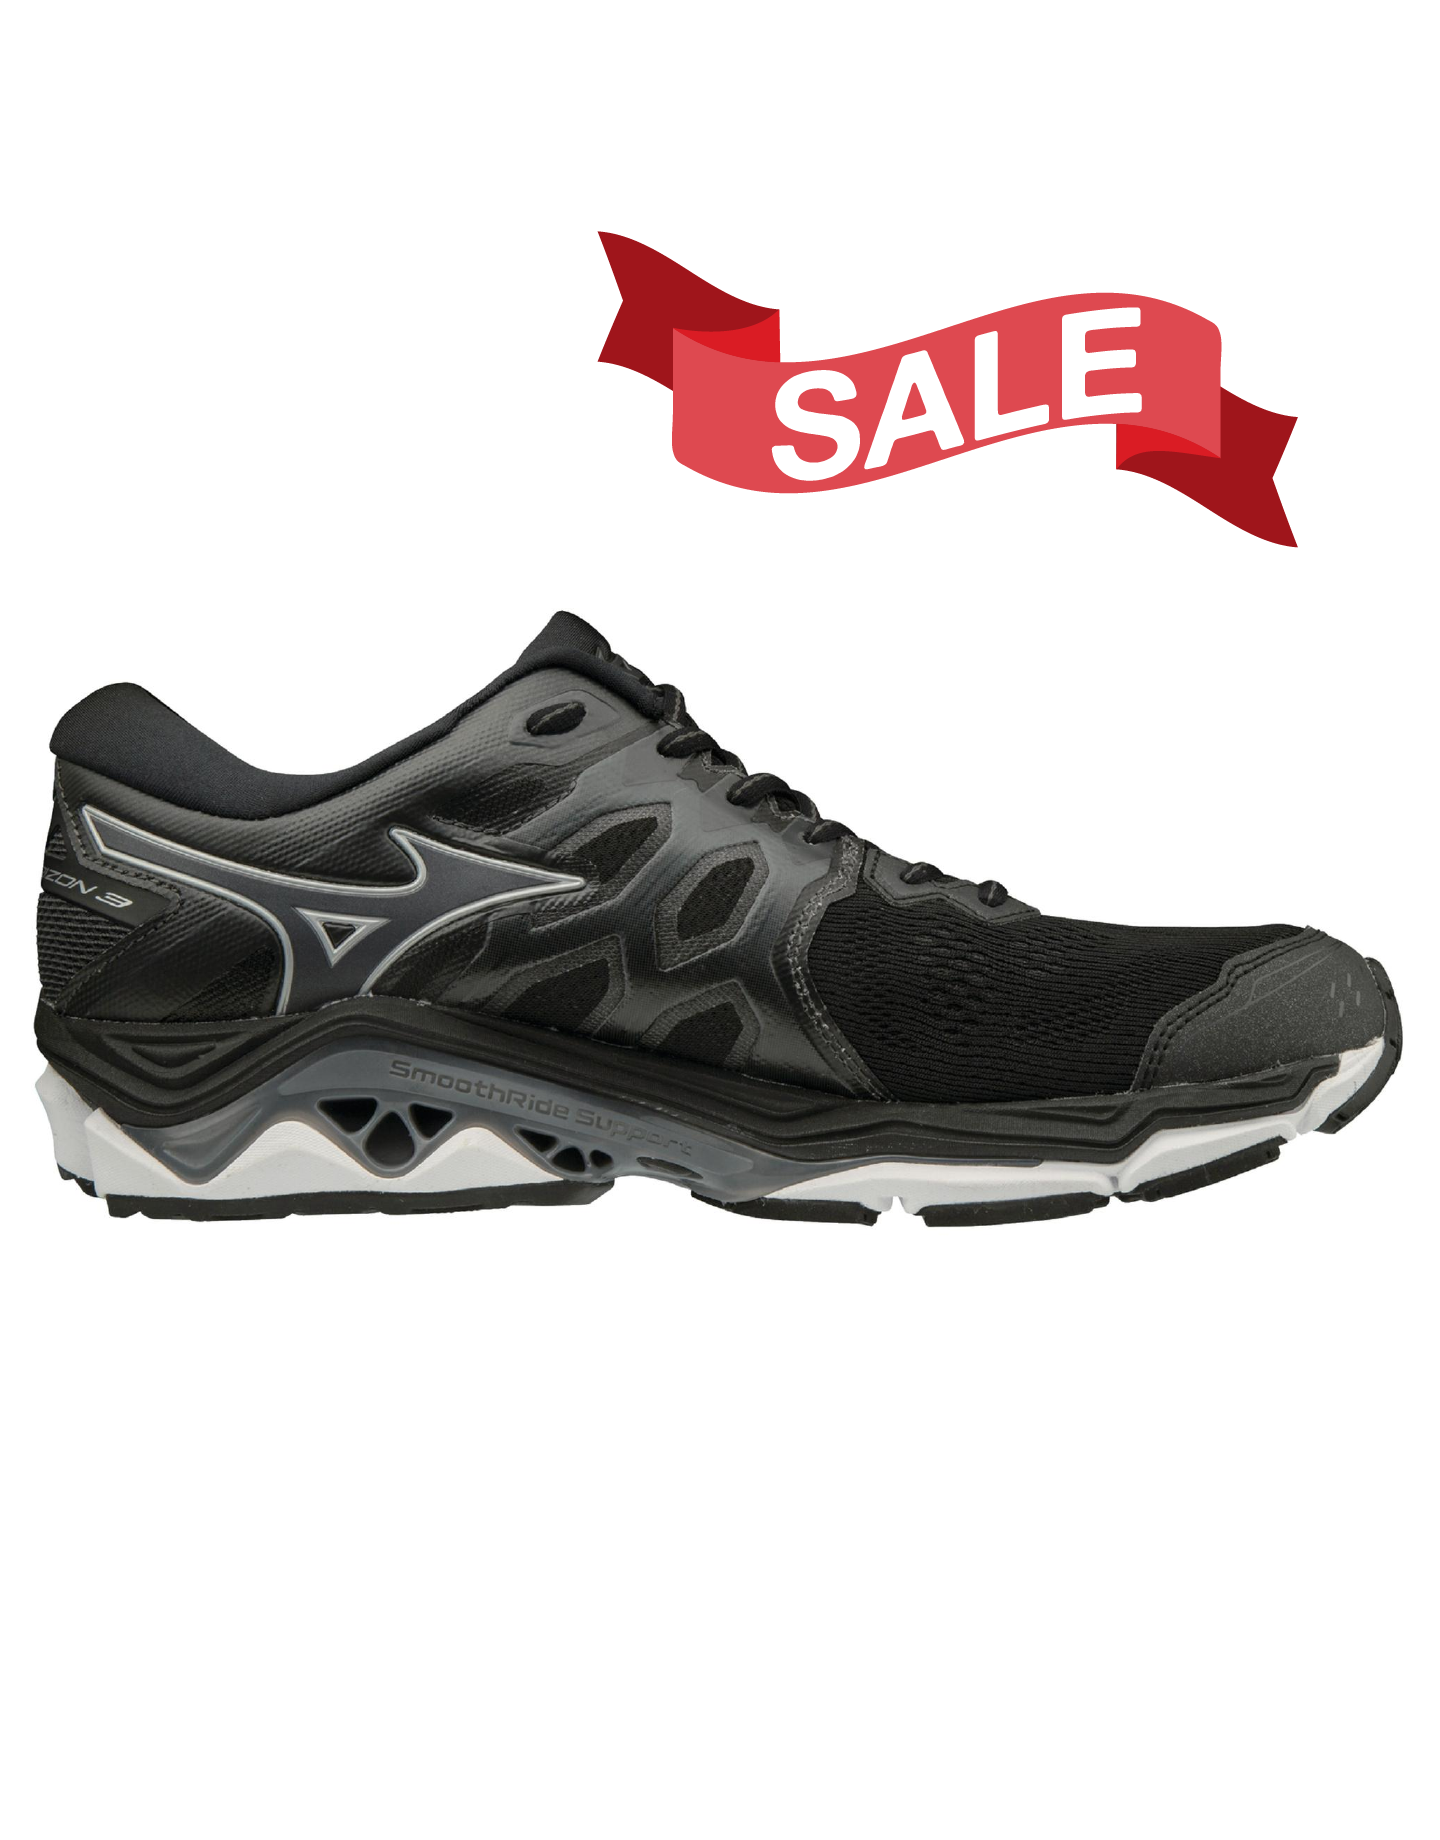 Mizuno Mizuno Wave Horizon 3 - Men